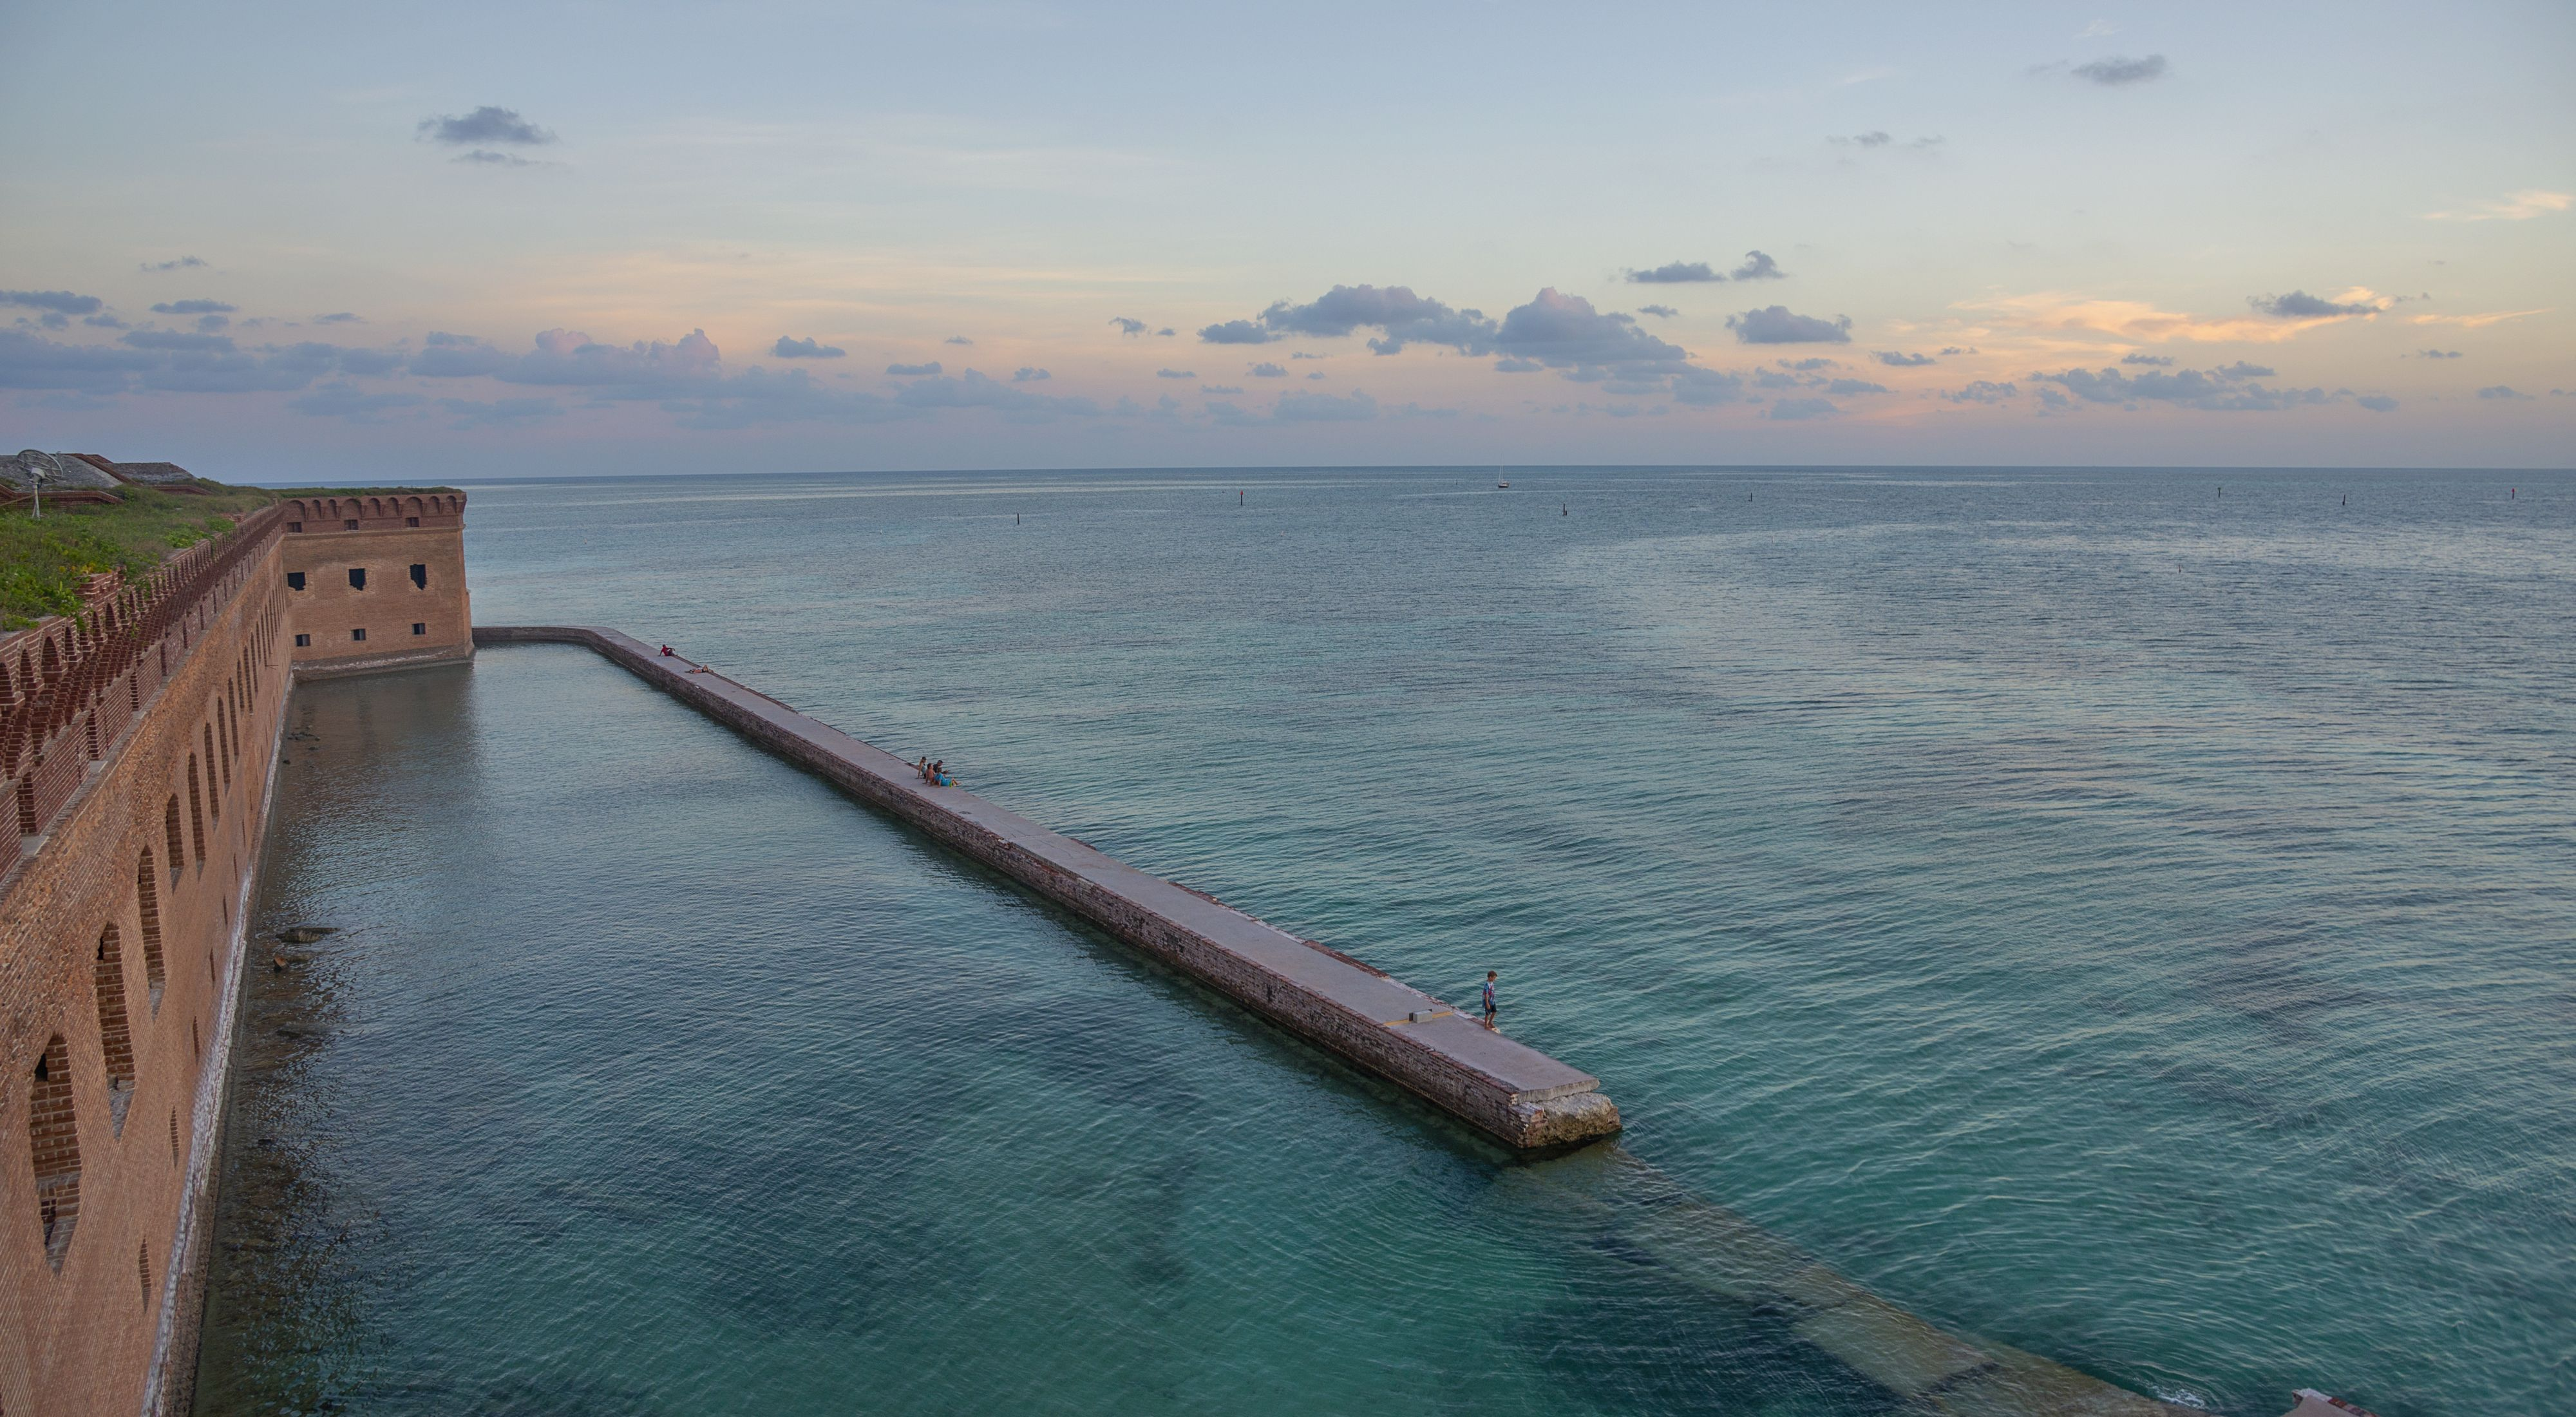 about 75 miles from Key West, inside Dry Tortugas National Park.